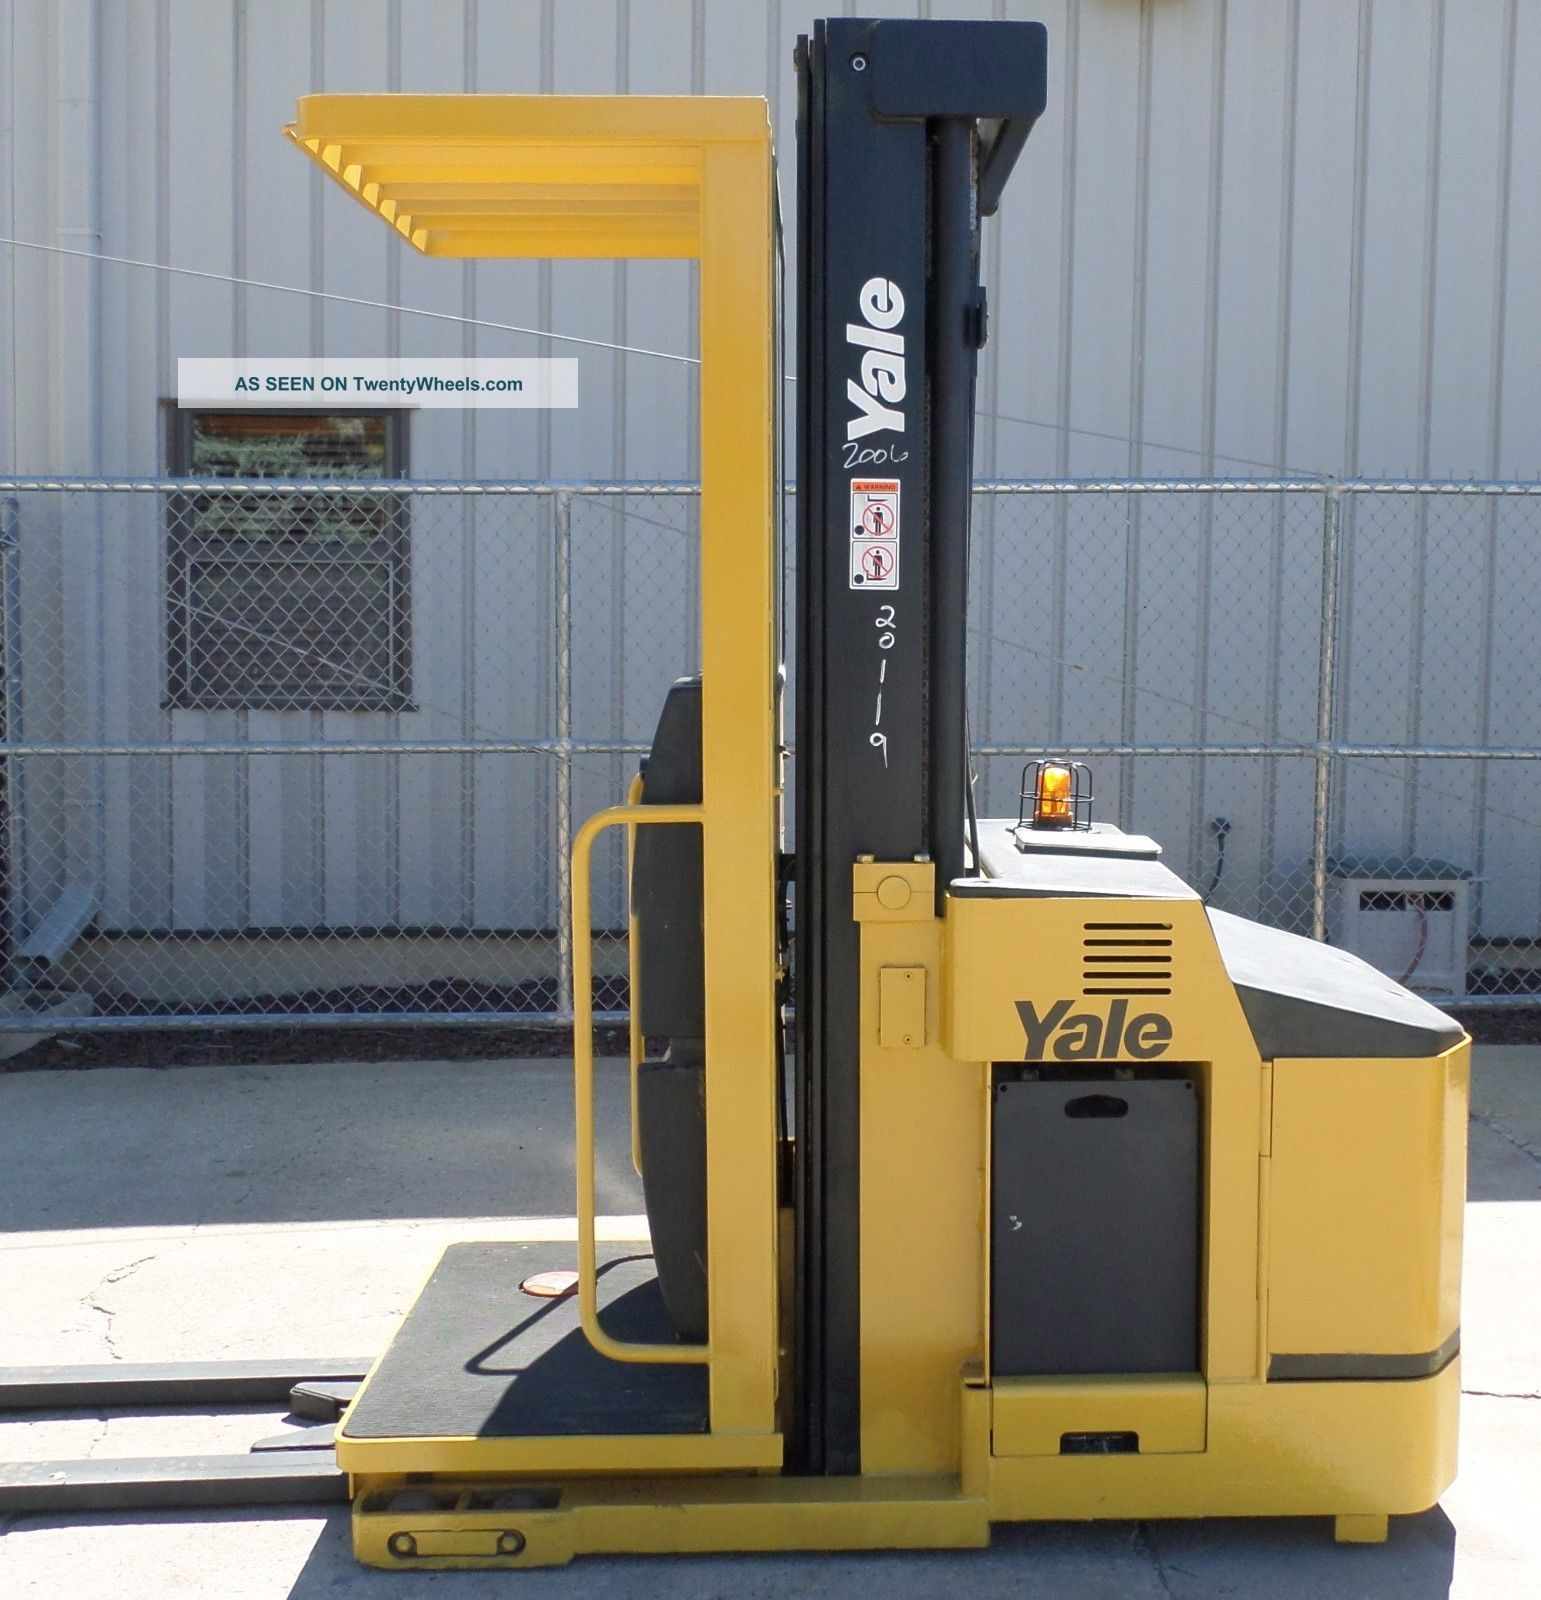 Yale Model Oso30ecn (2006) 3000 Lbs Capacity Order Picker Electric Forklift Forklifts photo